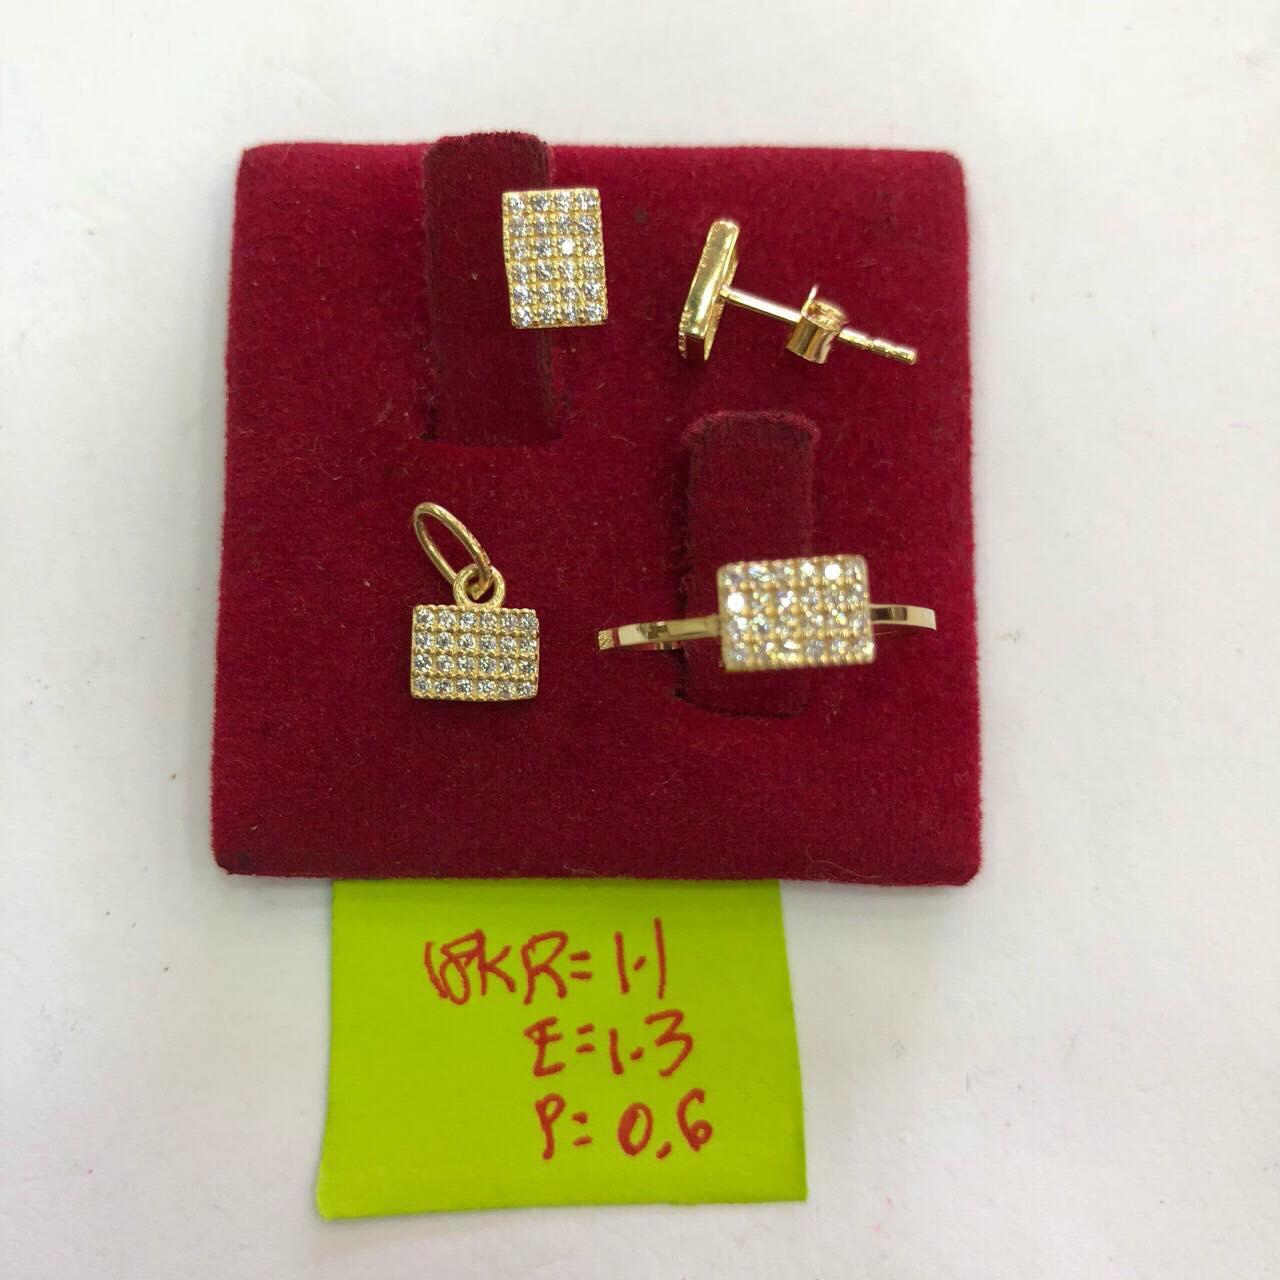 3307ddf26db93 Gold Jewelry Sets for sale - Pure Gold Jewelry Set online brands ...